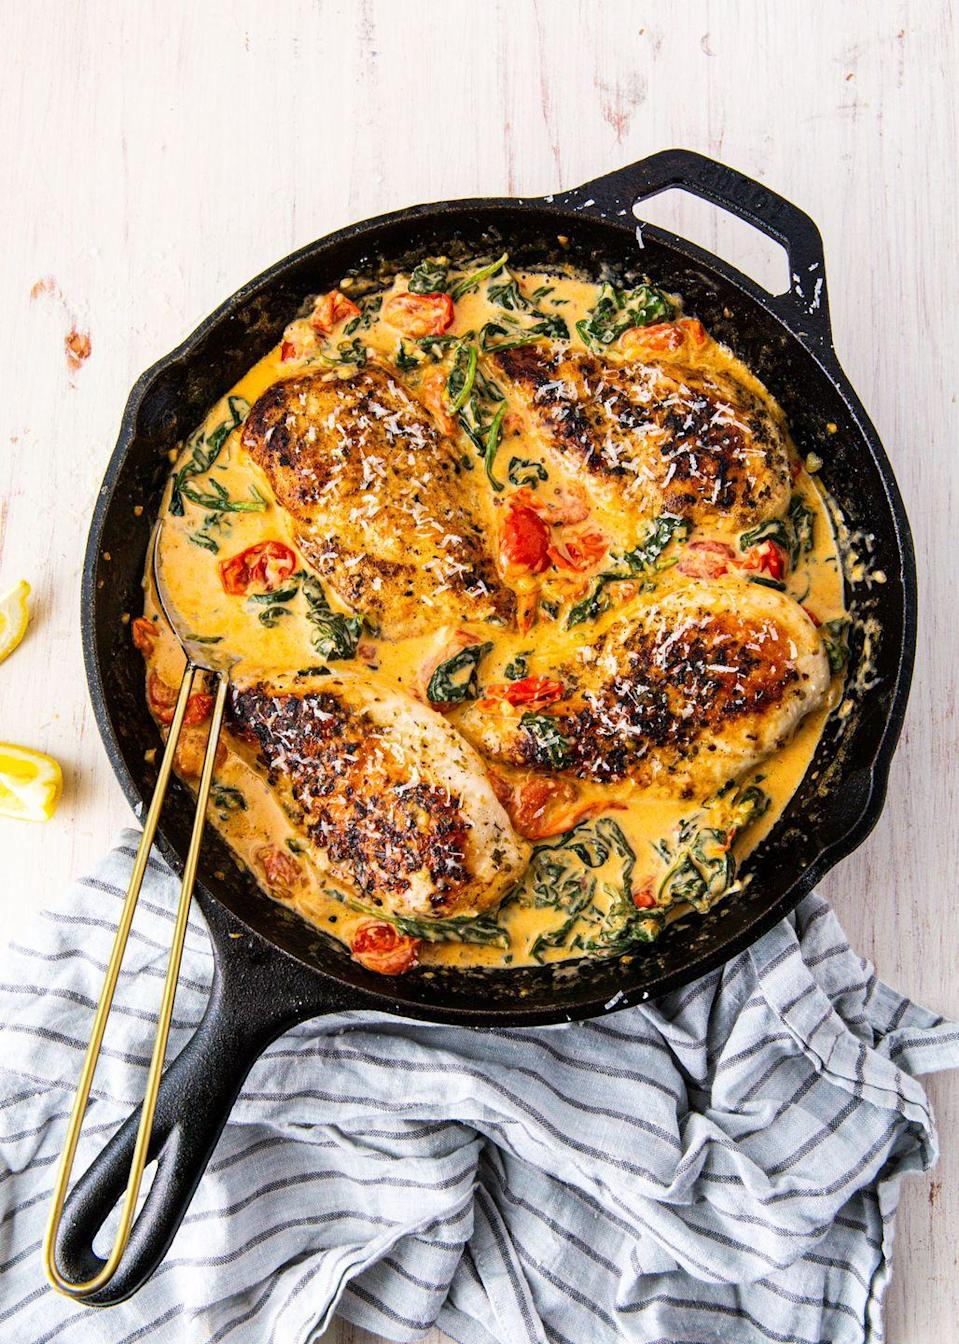 """<p>Be sure to have some crusty bread on hand, because this sauce is killer.</p><p>Get the recipe from <a href=""""https://www.delish.com/cooking/recipe-ideas/a19636089/creamy-tuscan-chicken-recipe/"""" rel=""""nofollow noopener"""" target=""""_blank"""" data-ylk=""""slk:Delish"""" class=""""link rapid-noclick-resp"""">Delish</a>.</p>"""